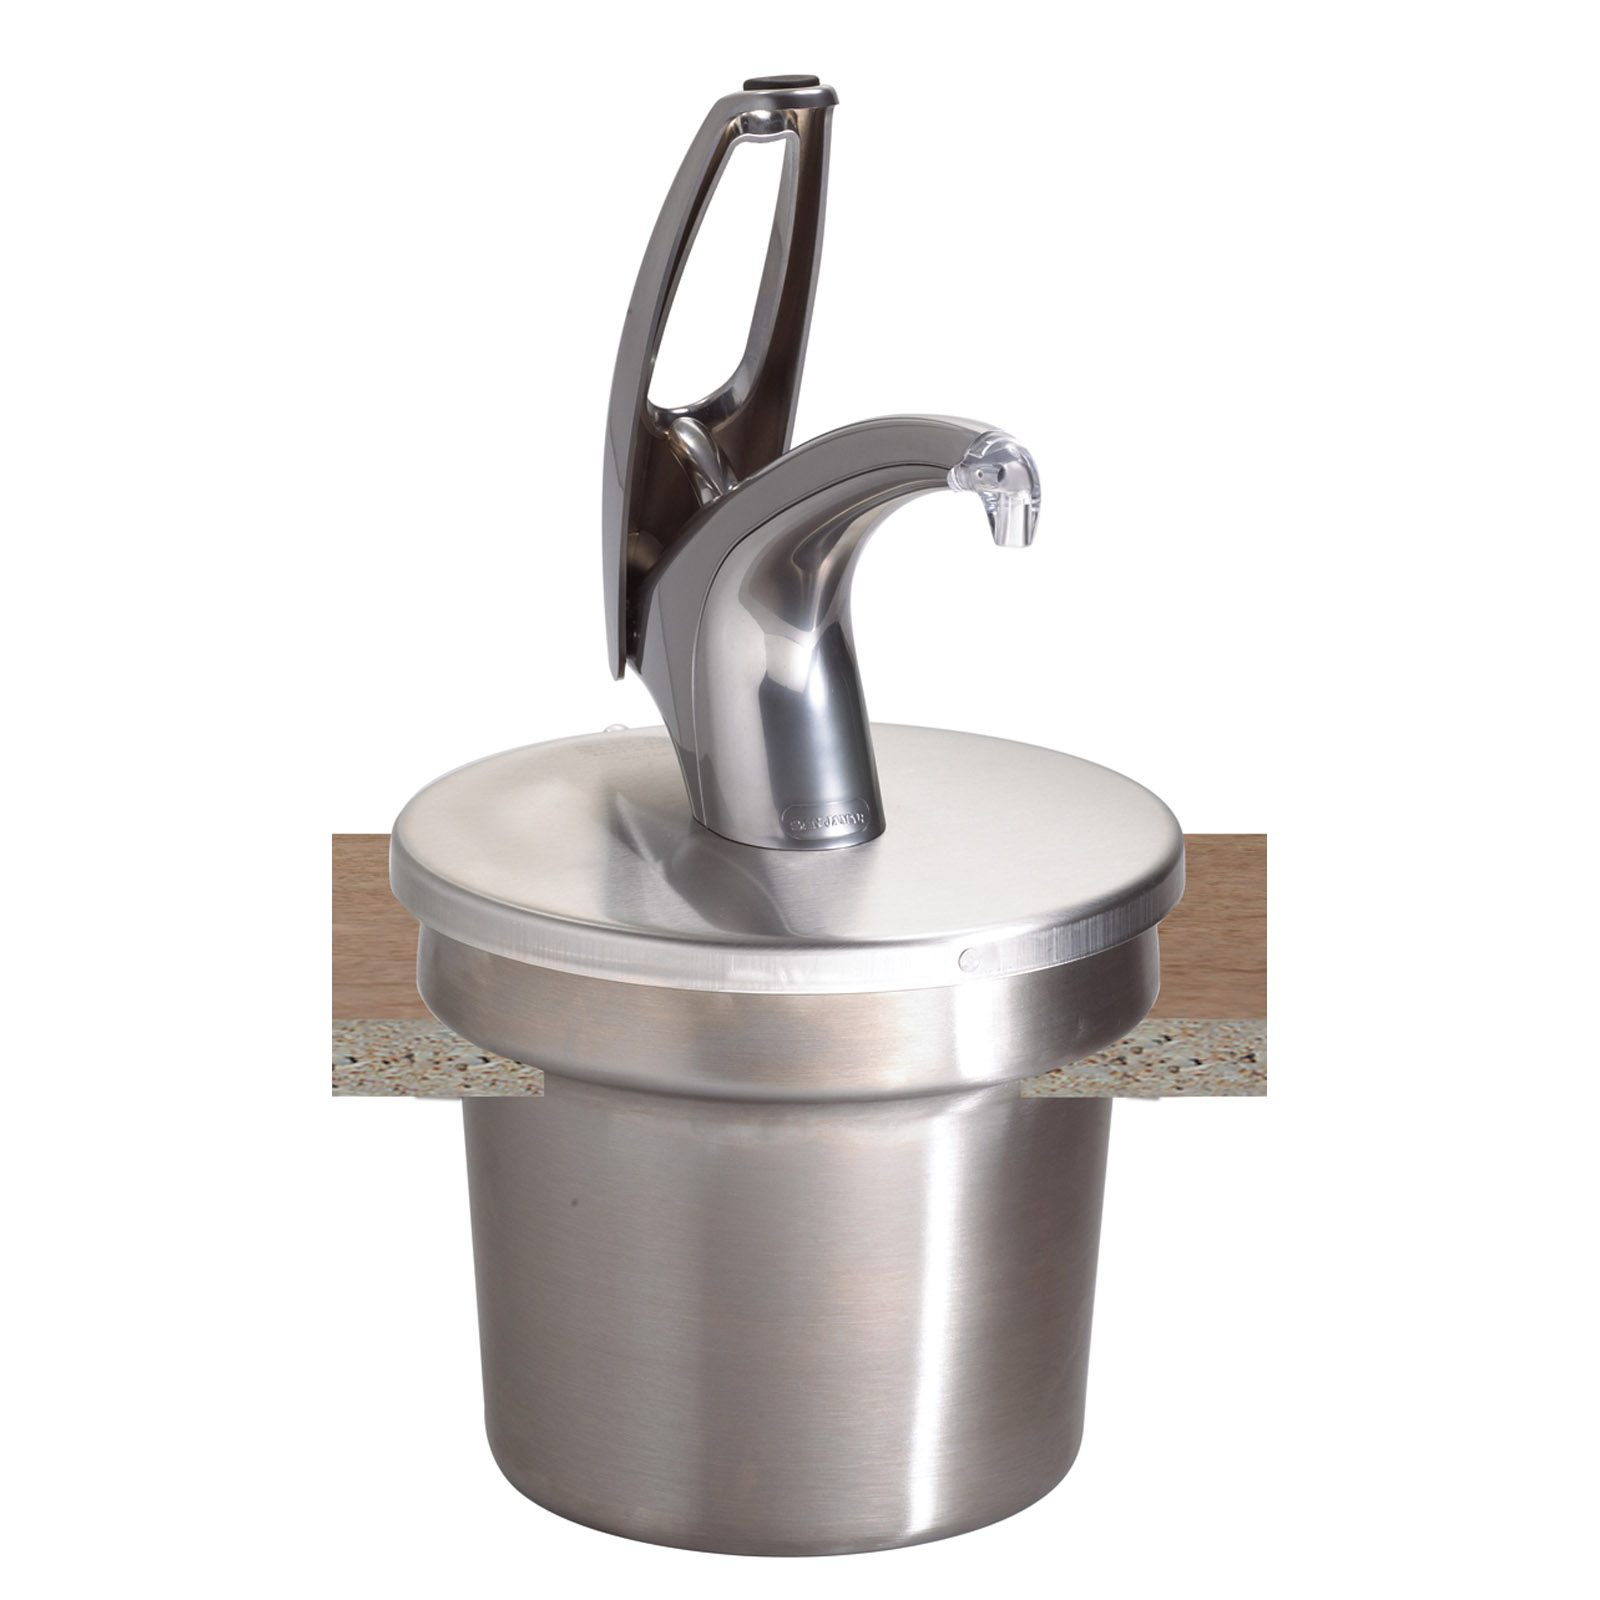 San Jamar P4710 condiment dispenser pump-style